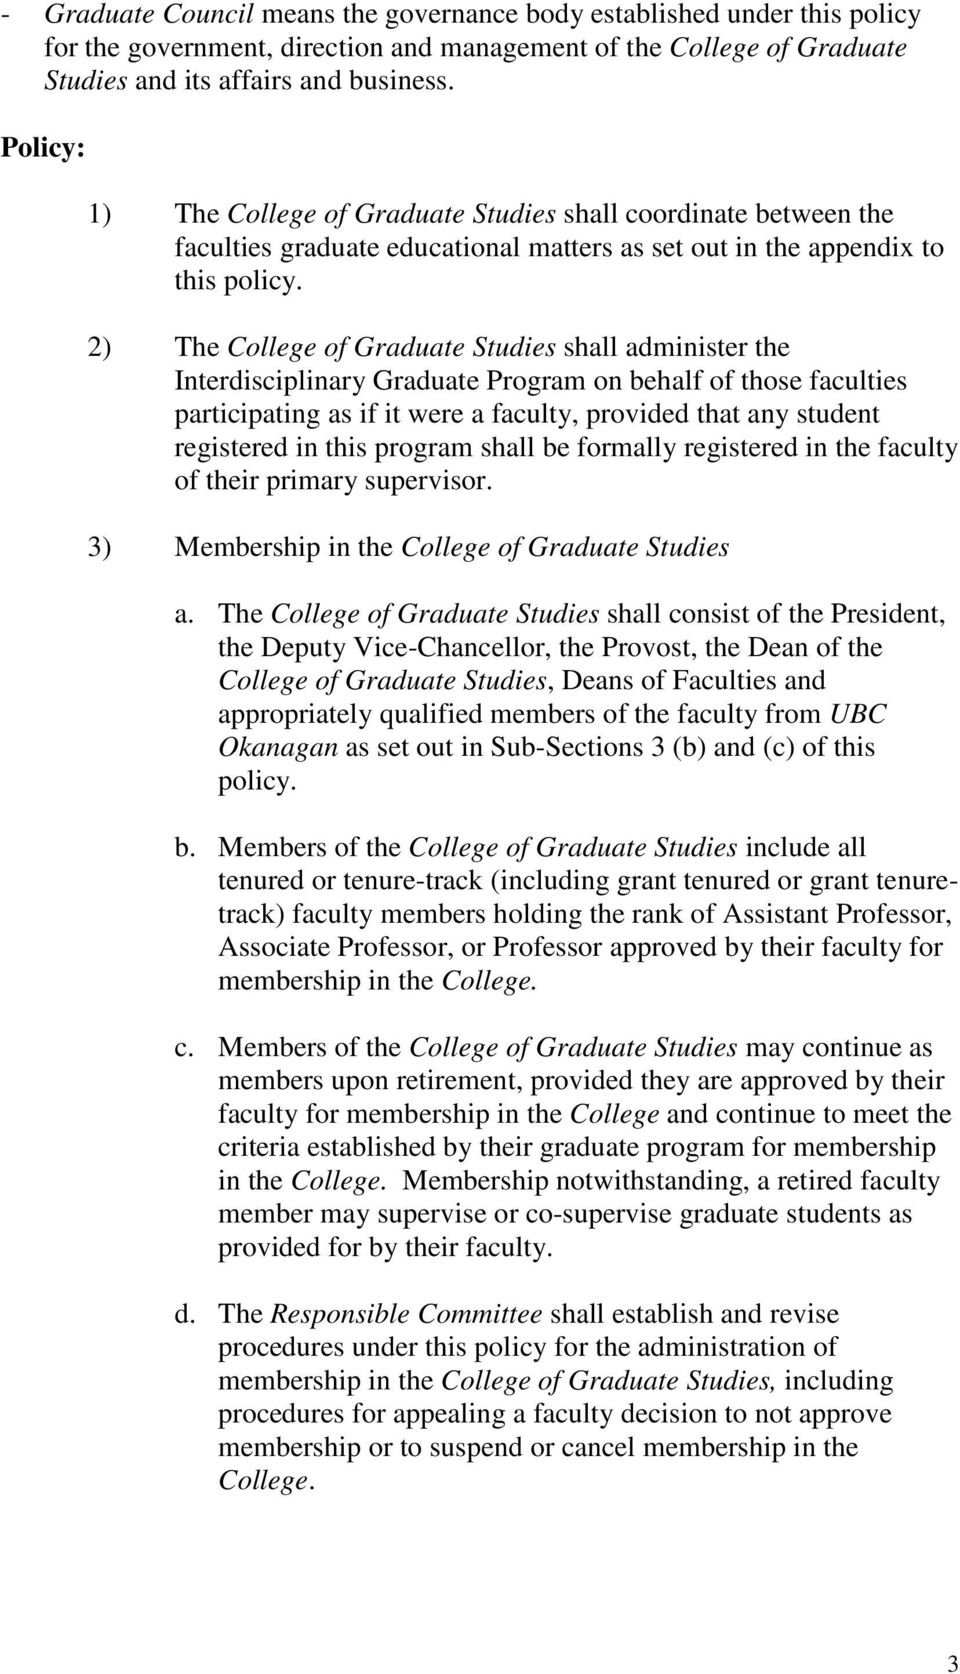 2) The College of Graduate Studies shall administer the Interdisciplinary Graduate Program on behalf of those faculties participating as if it were a faculty, provided that any student registered in